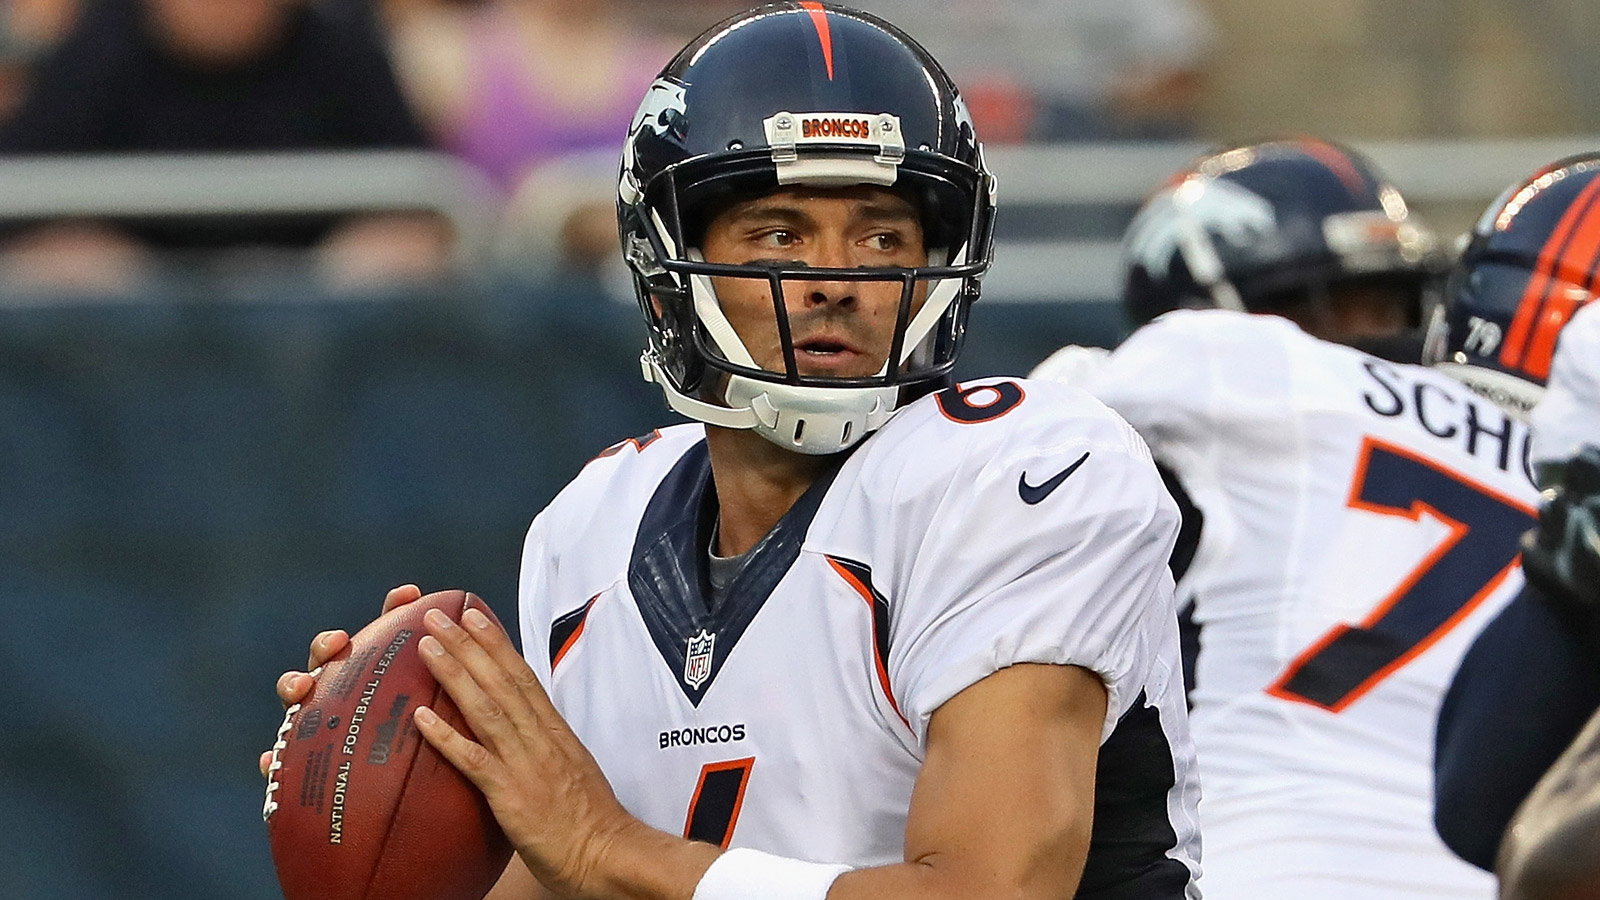 Mark Sanchez of the Denver Broncos at Soldier Field on Aug. 11, 2016. (Photo by Jonathan Daniel/Getty Images)